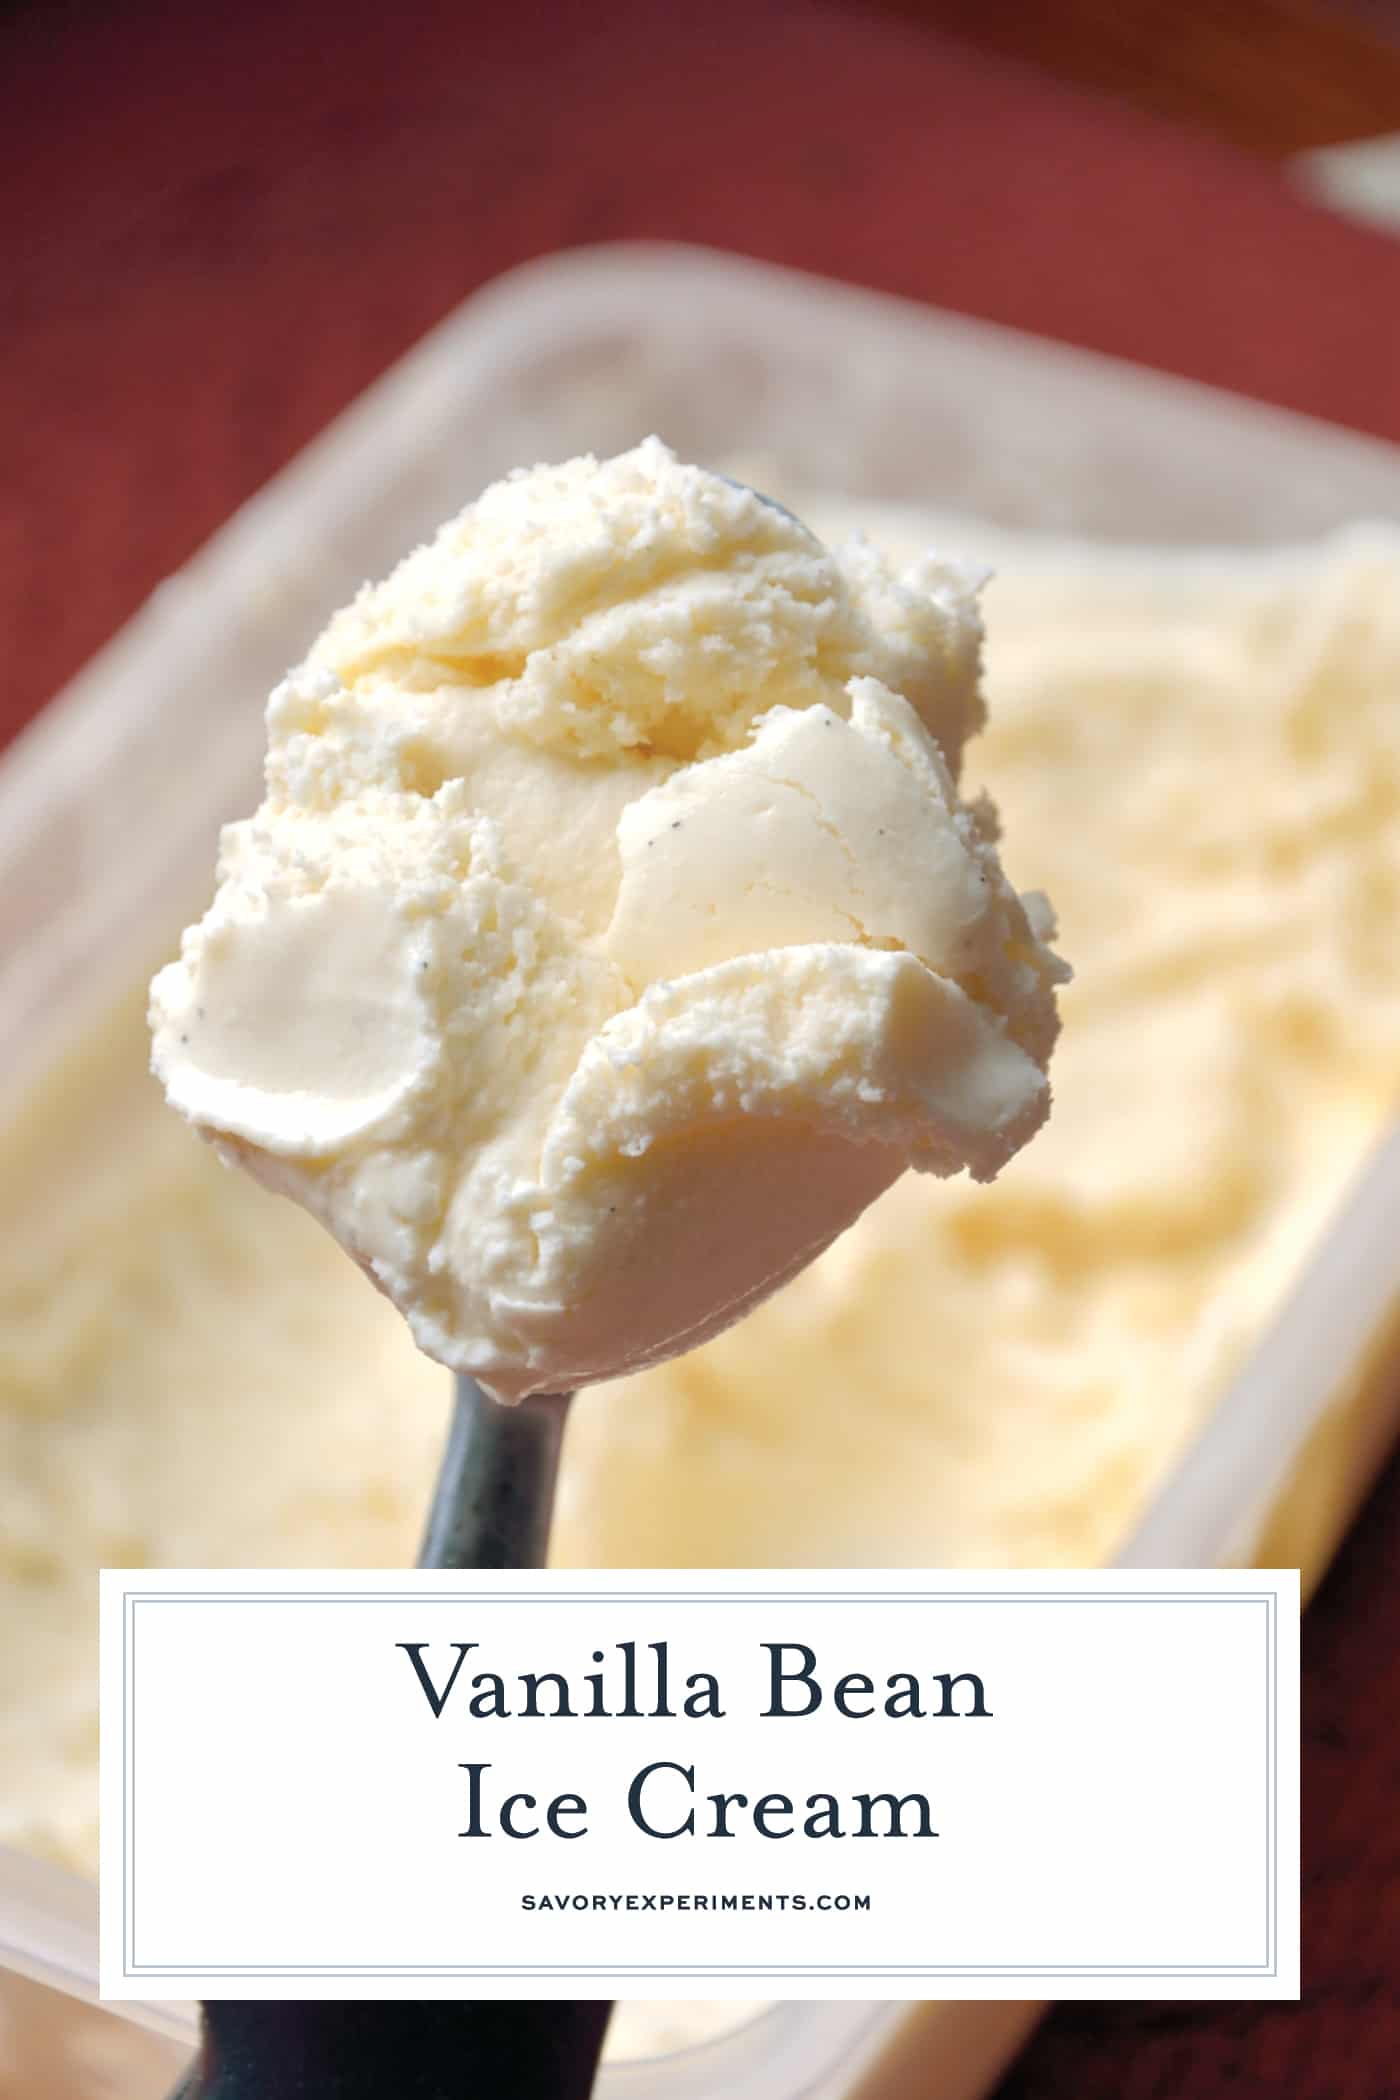 Make Vanilla Bean Ice Cream from scratch using whole vanilla beans and real cream. Homemade Ice Cream in an ice cream maker for the win!#icecreammakericecream #homemadevanillaicecream #vanillabeanicecream www.savoryexperiments.com